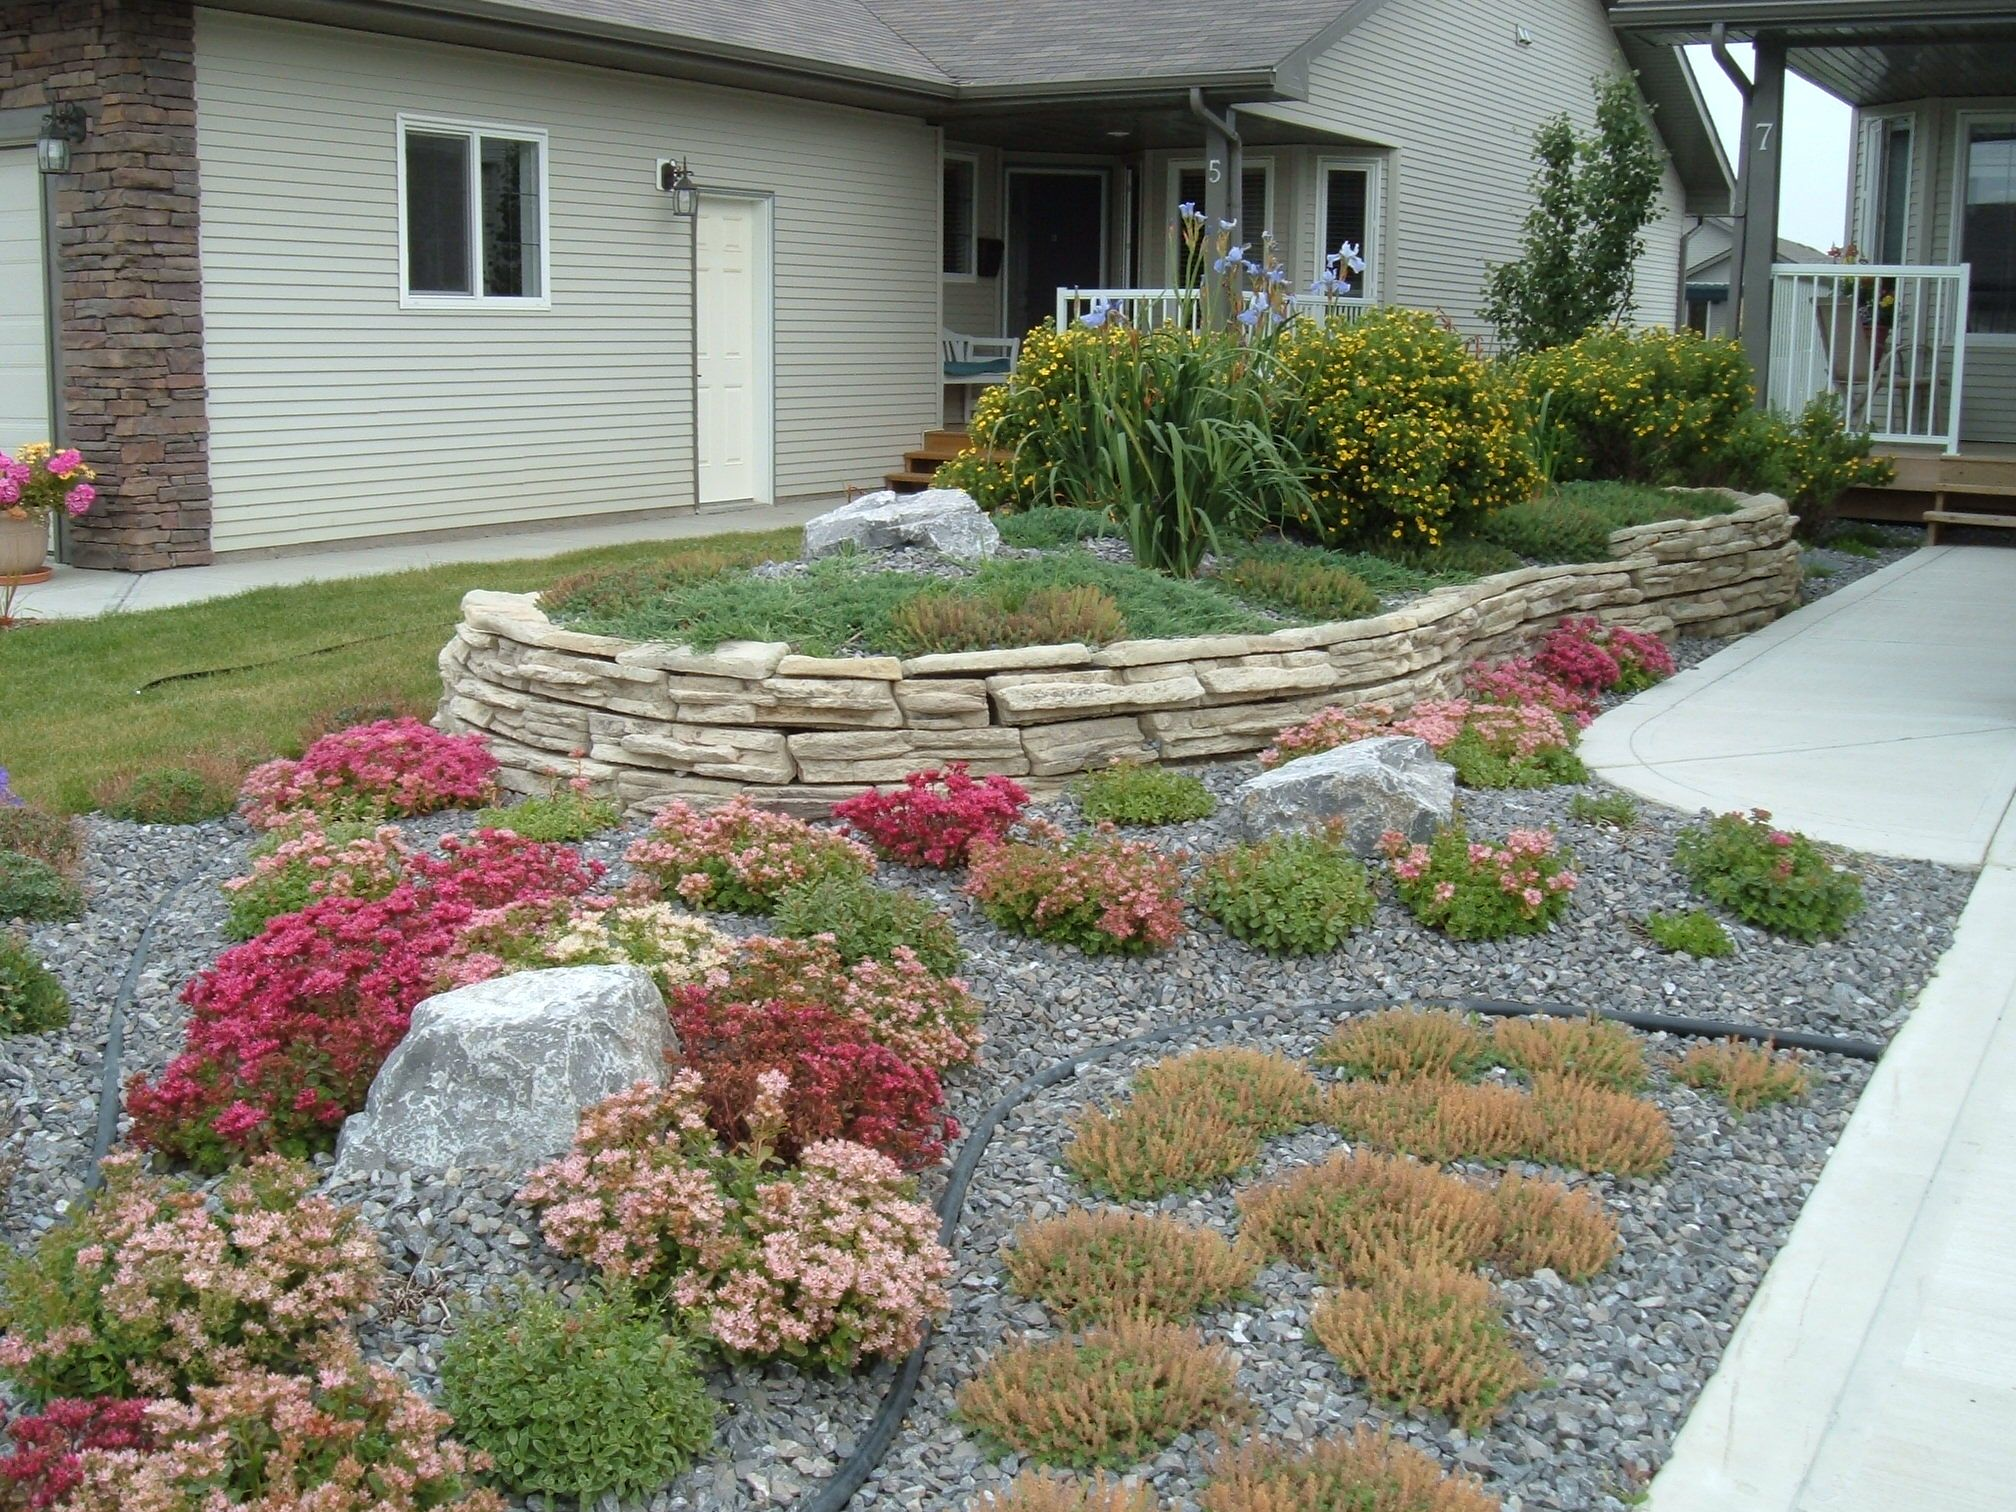 Minimal maintenance landscaping a no lawn front yard with for No maintenance garden plants